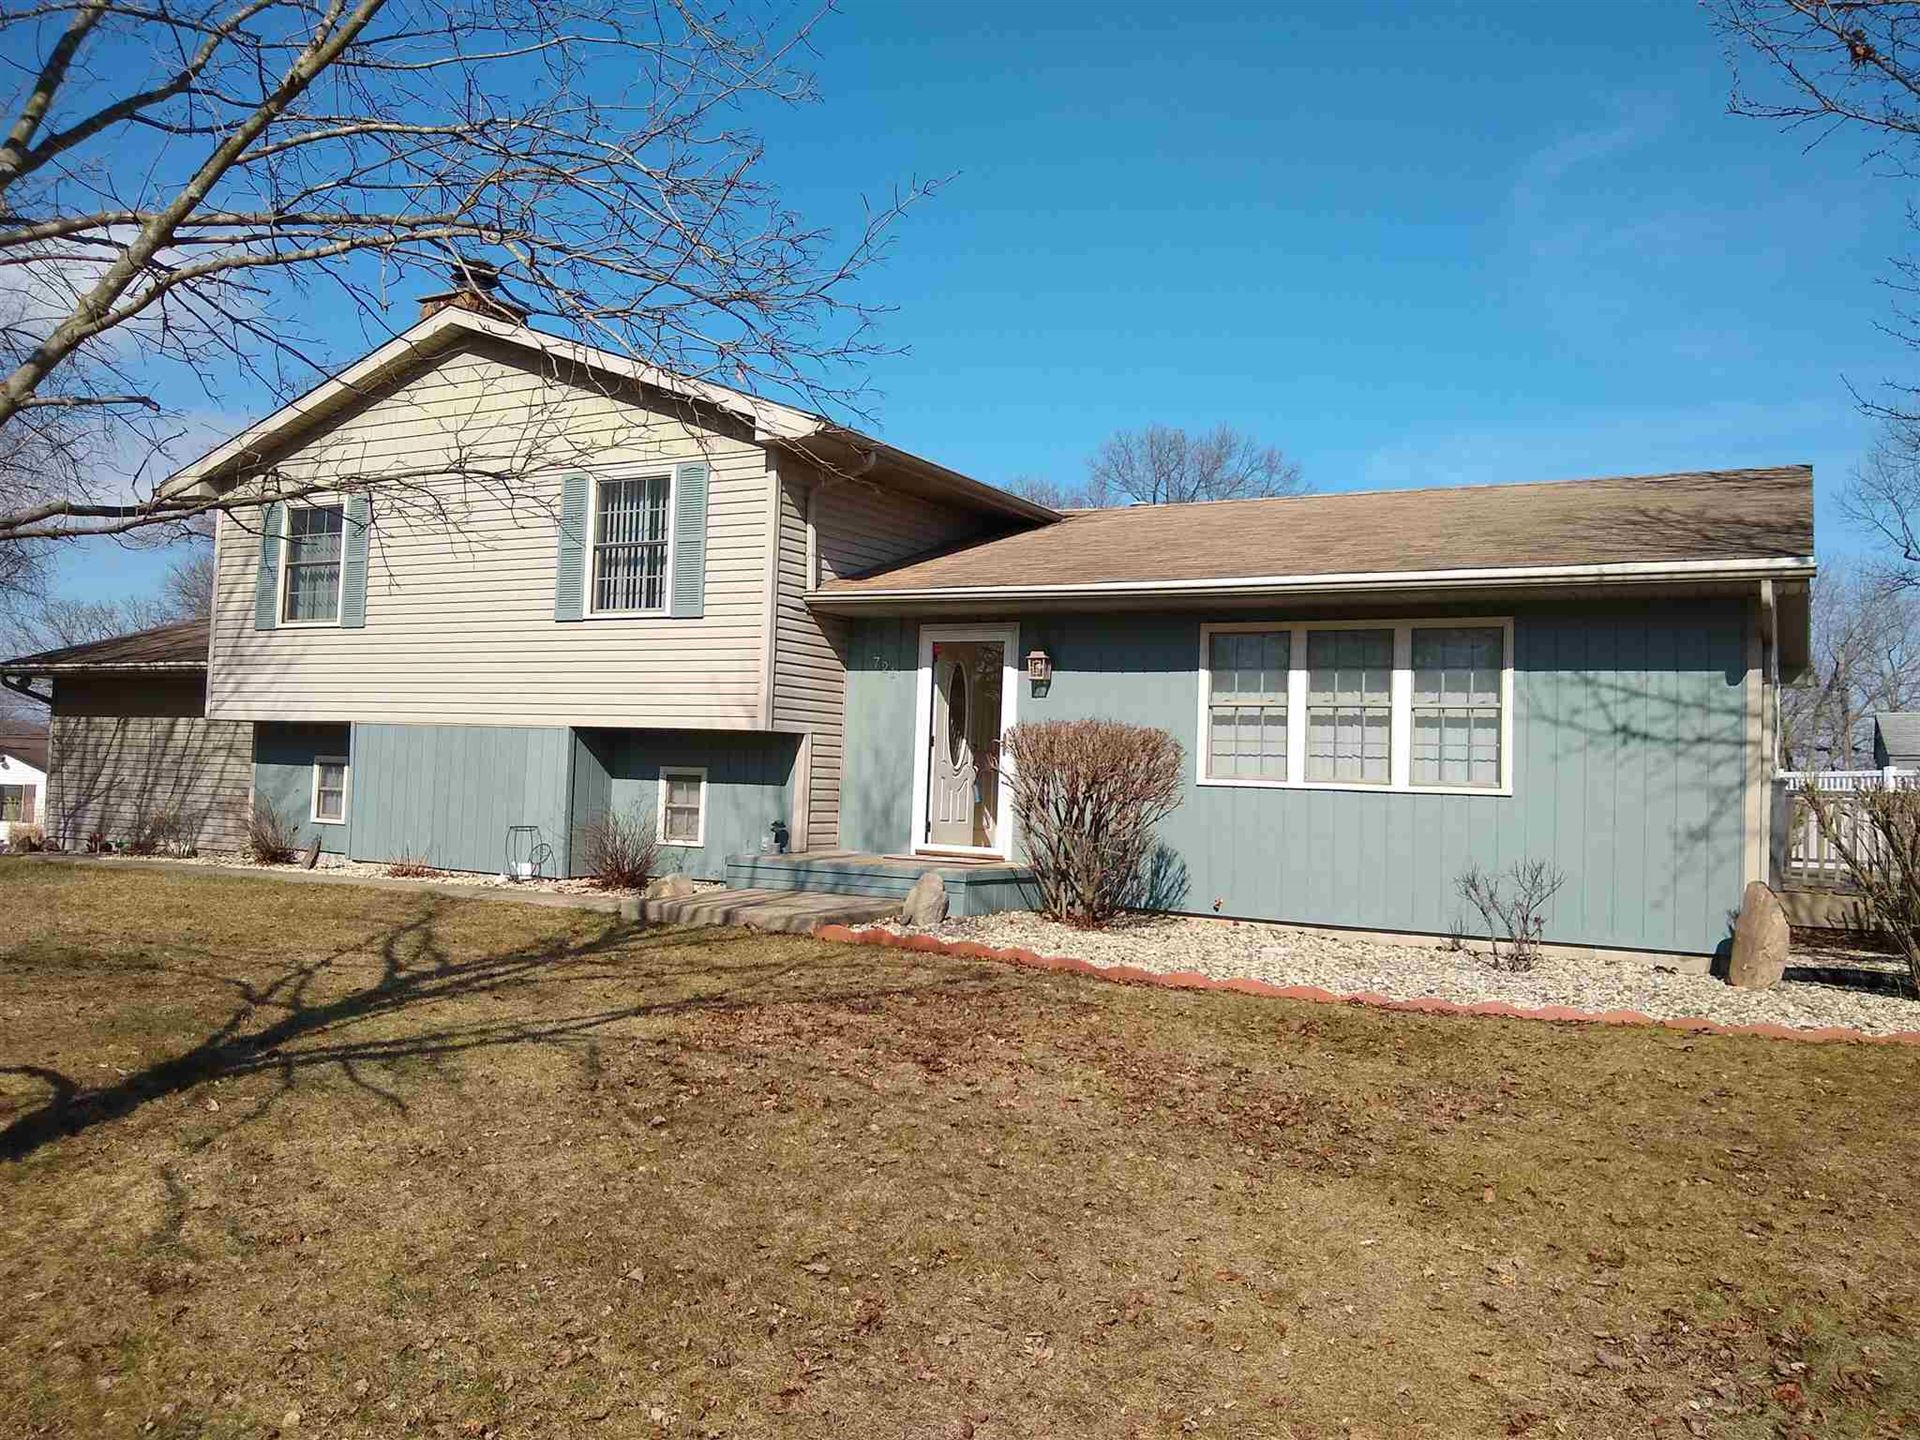 Photo of 721 E Boydston Mill Drive, North Webster, IN 46555 (MLS # 202008243)